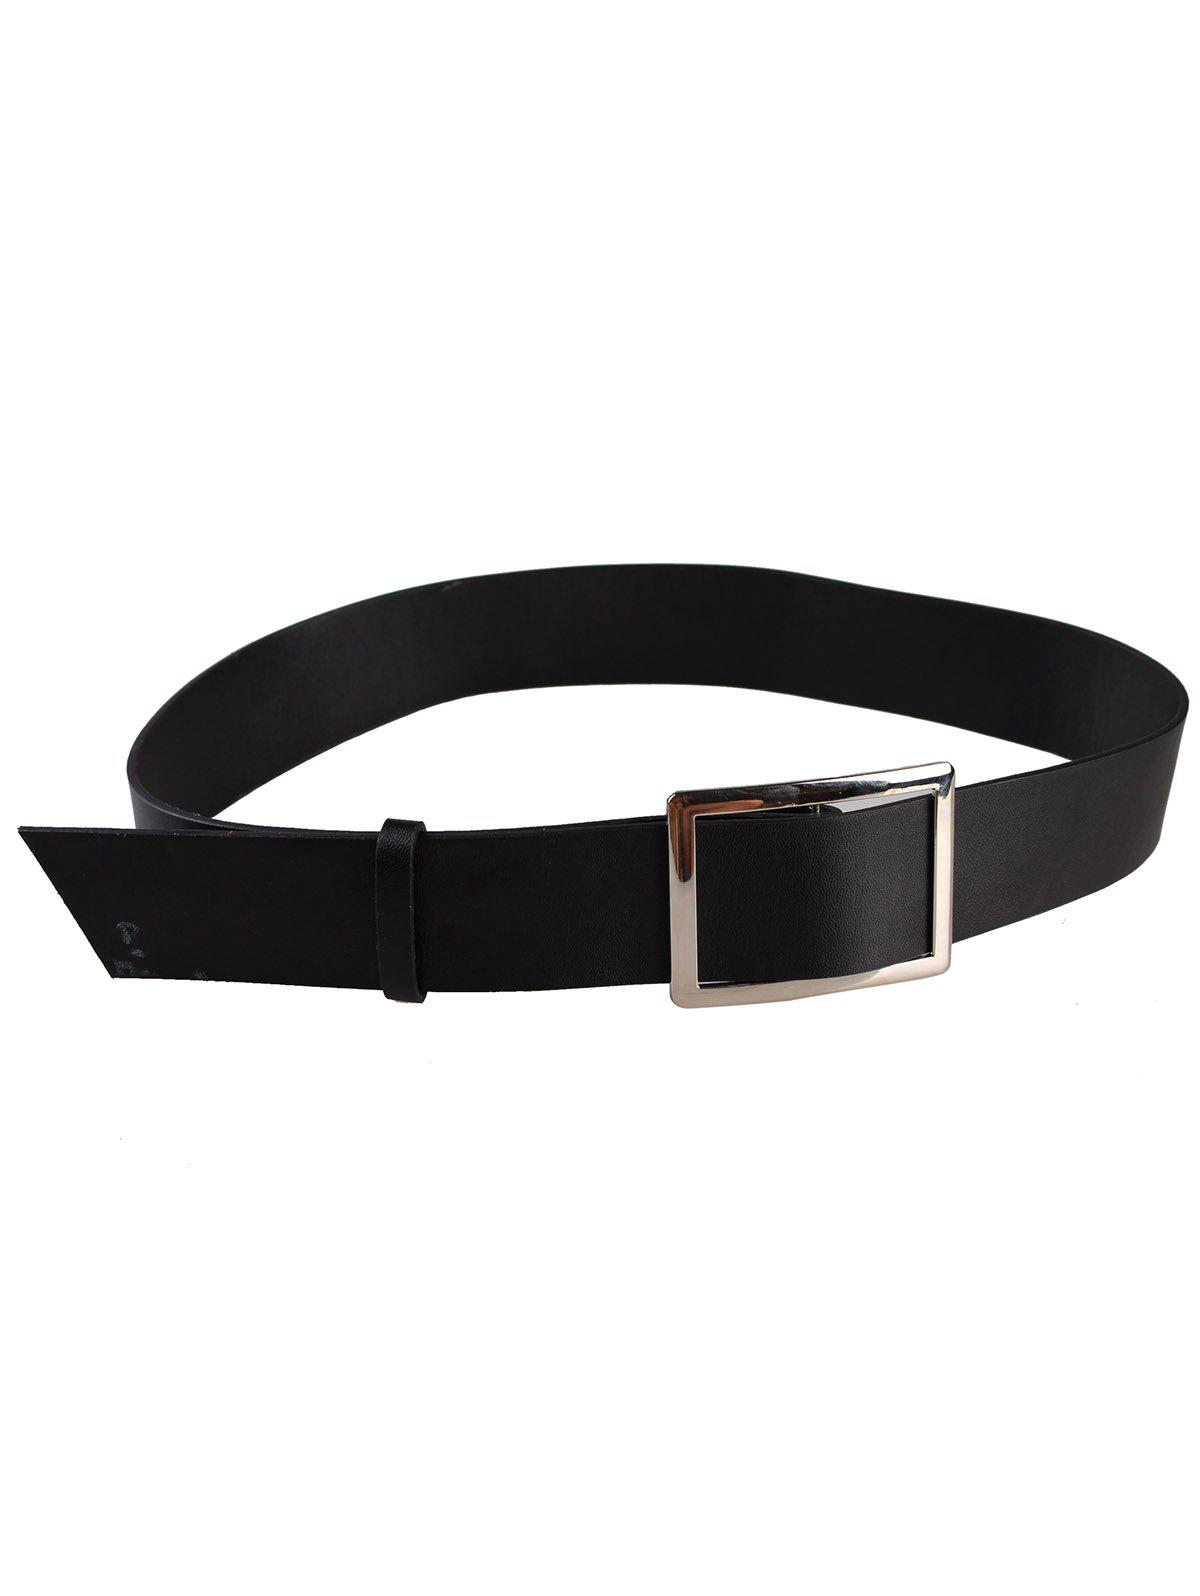 Vintage Metal Buckle Decorated Faux Leather Wide Waist Belt - BLACK